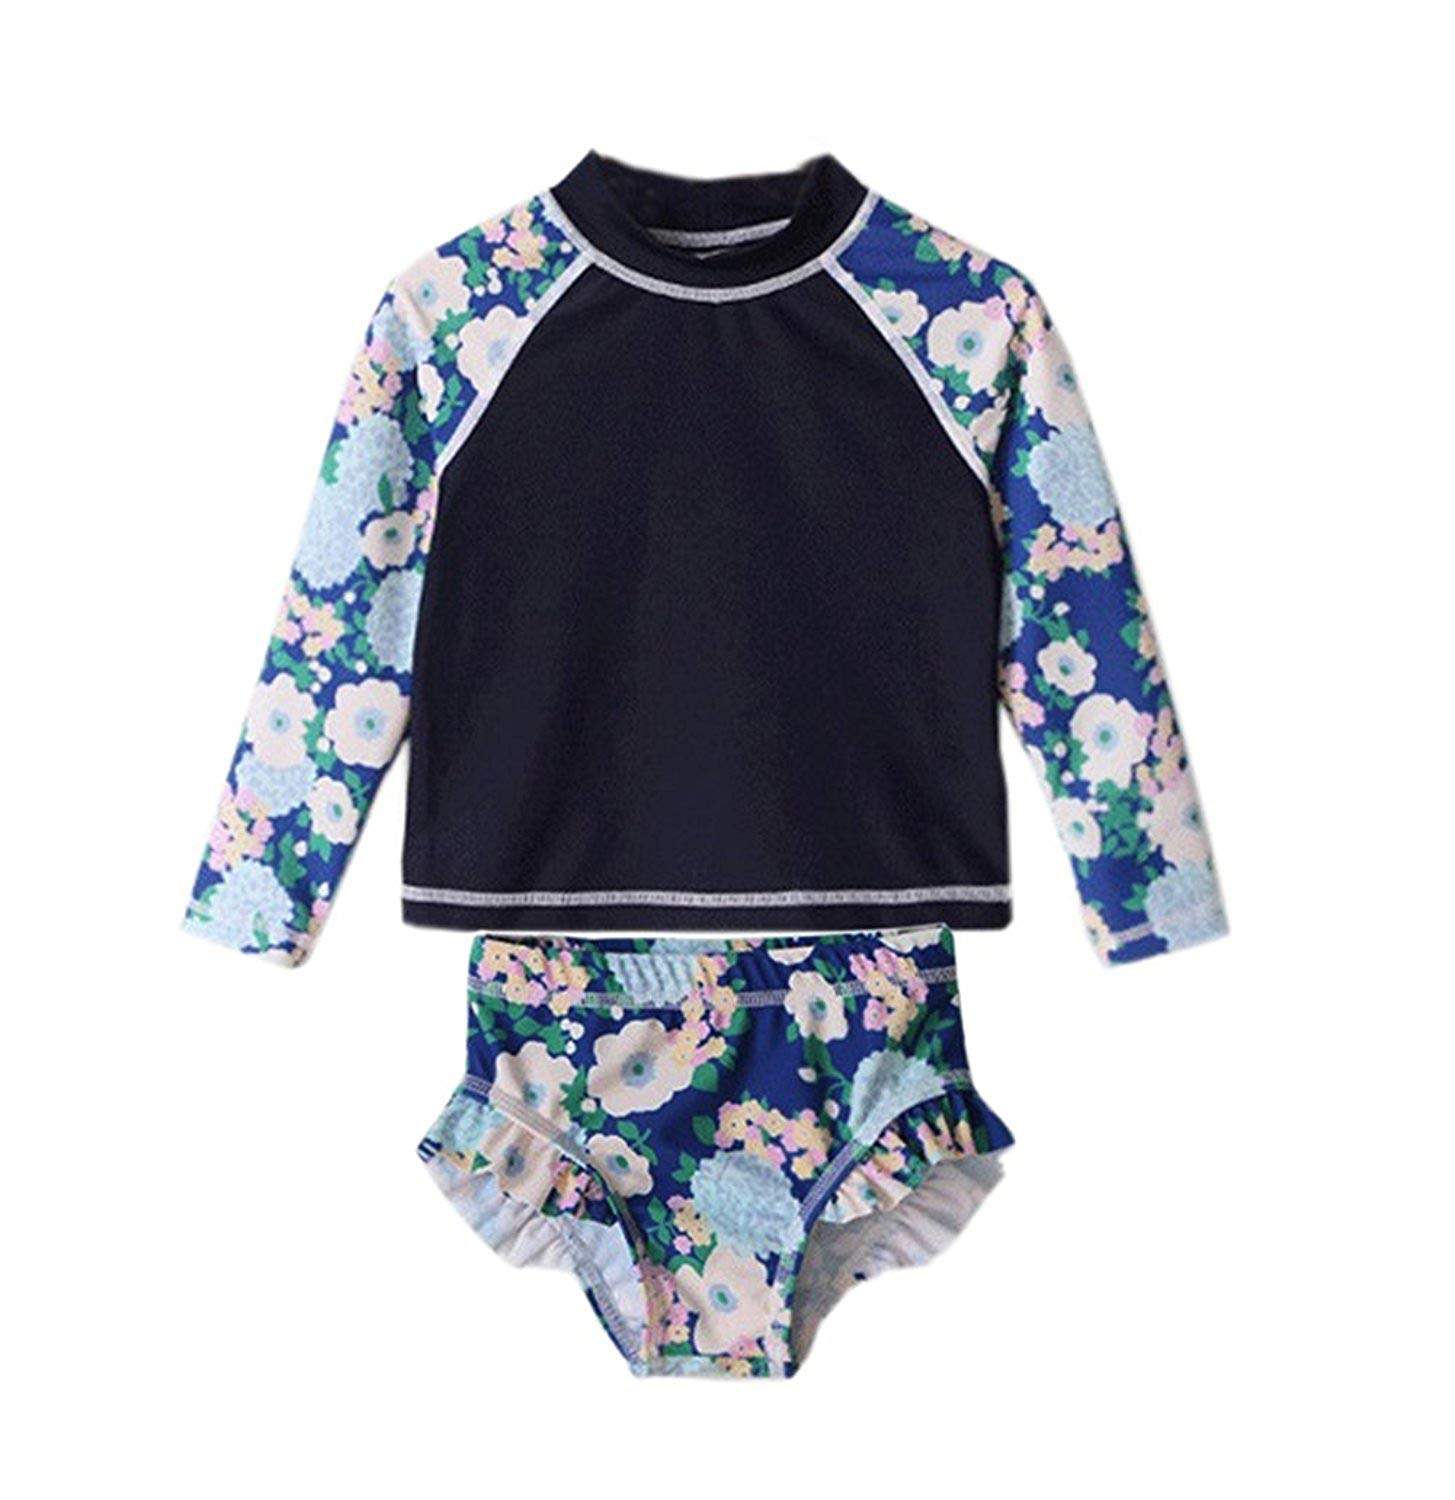 Jojobaby Baby Kids Girls Floral Long Sleeve Rash Guard Swimsuit Two Pieces Sun Protetion Swimwear Set UPF 50+